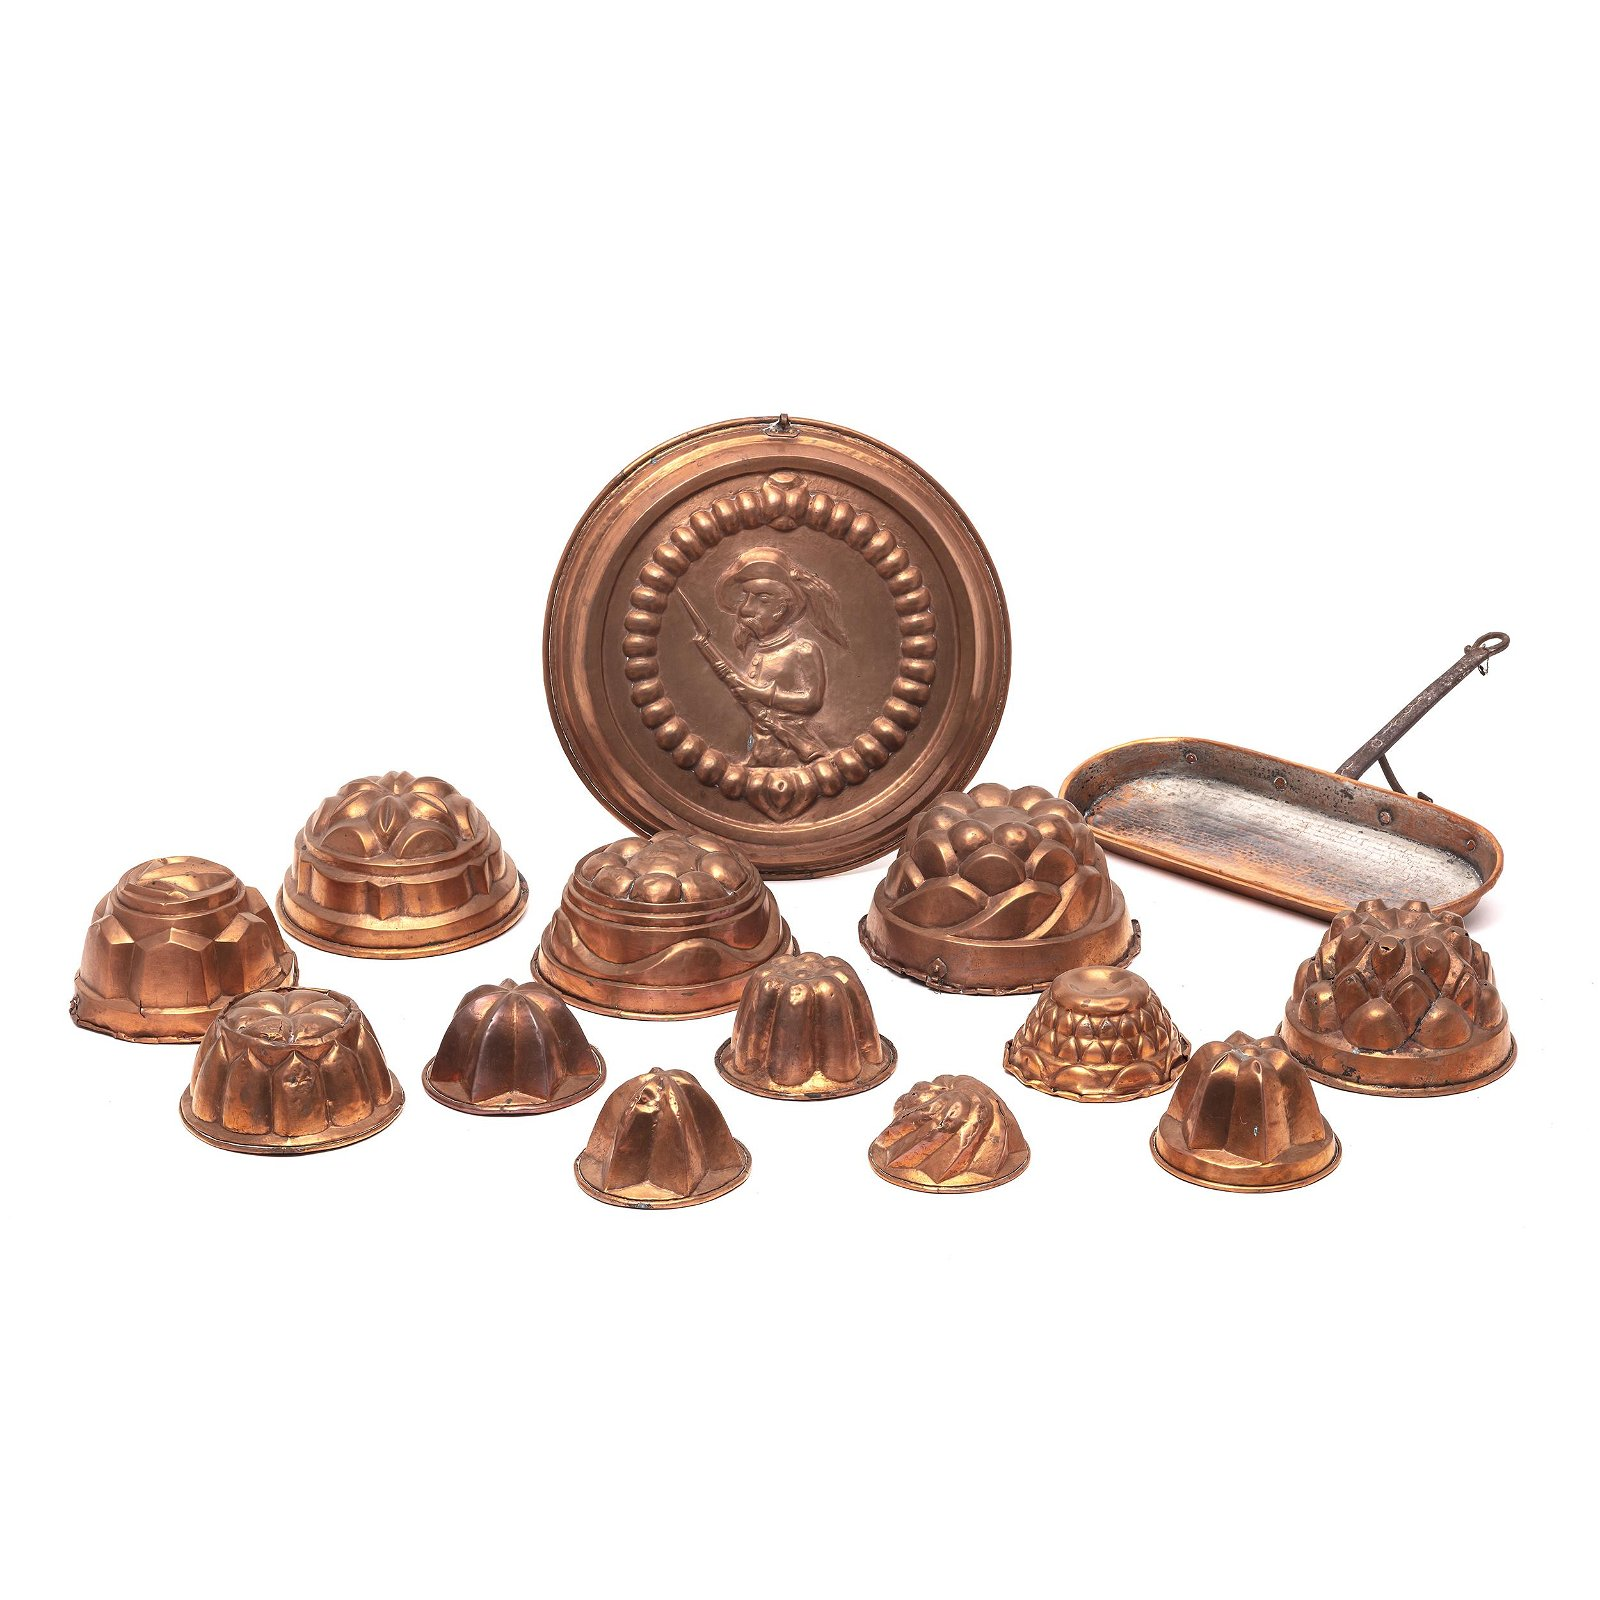 A collection of 14 18th century copper kitchen tools